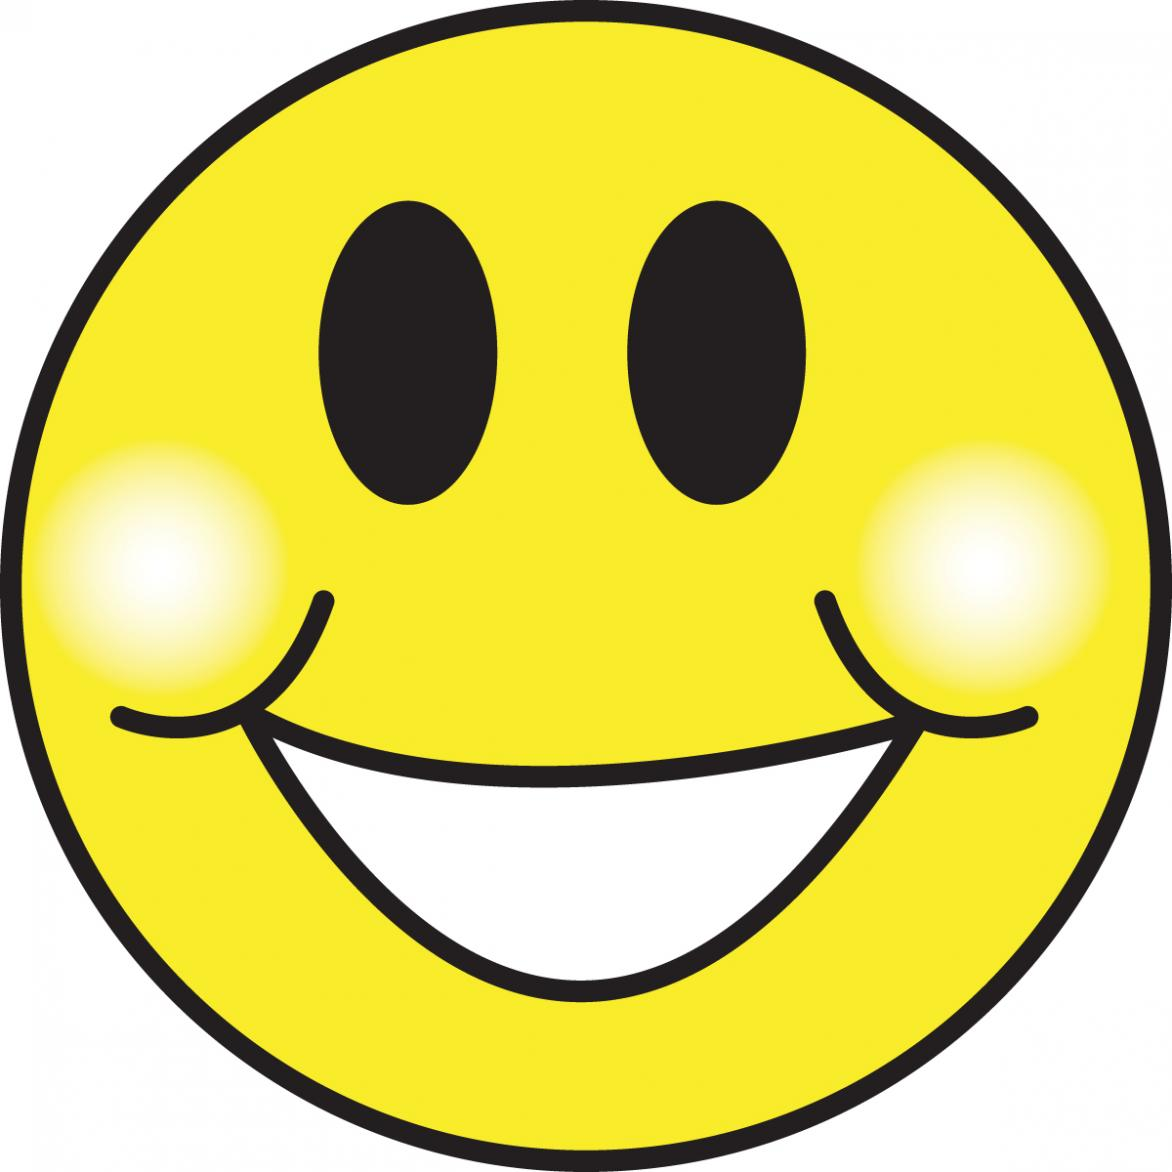 Cartoon smiley faces clipart picture royalty free download Free Cartoon Smiling Faces, Download Free Clip Art, Free Clip Art on ... picture royalty free download